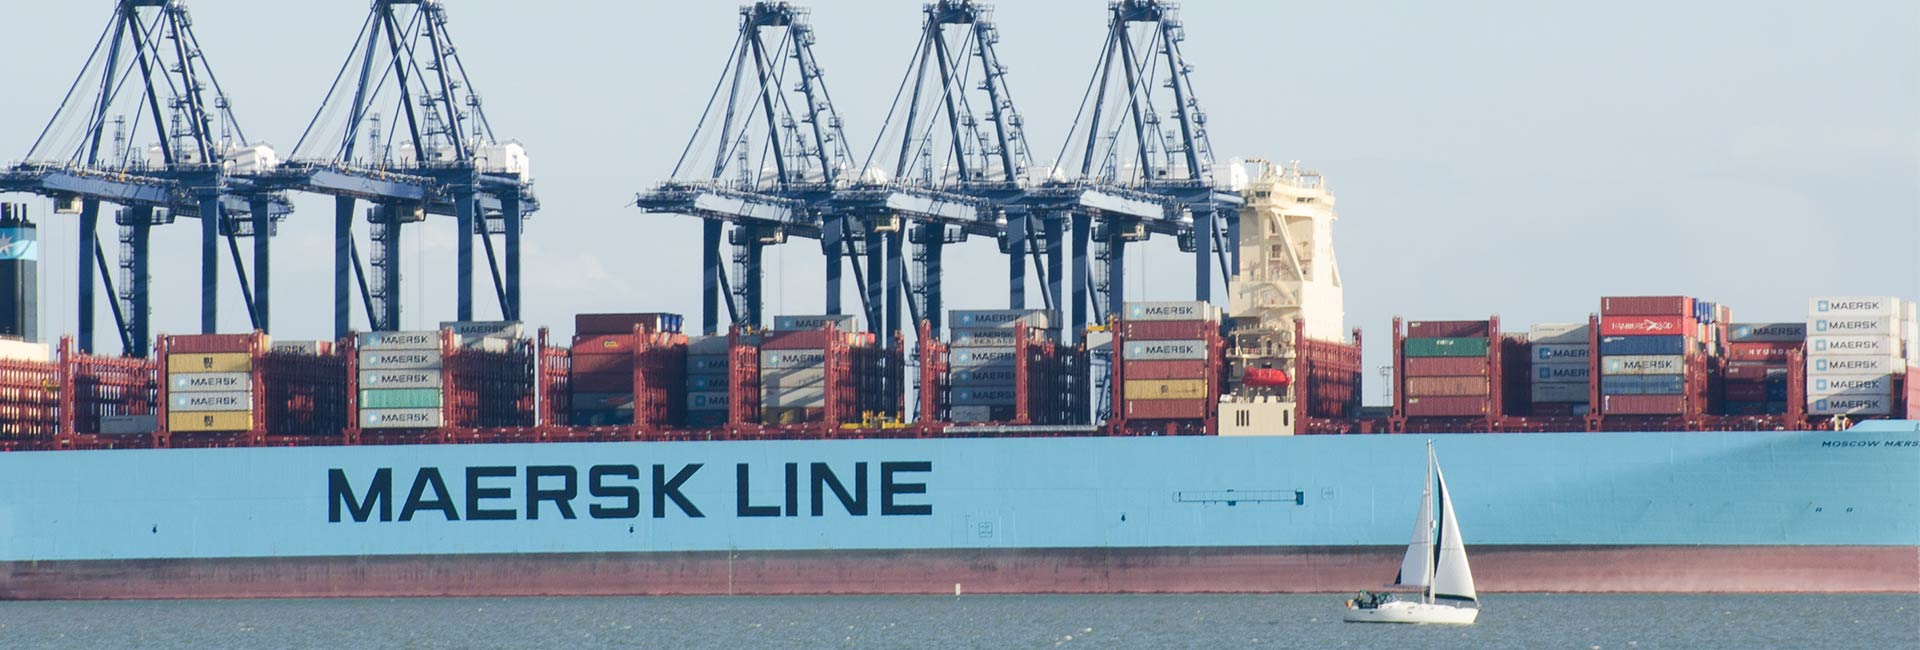 Maersk Line shipping containers